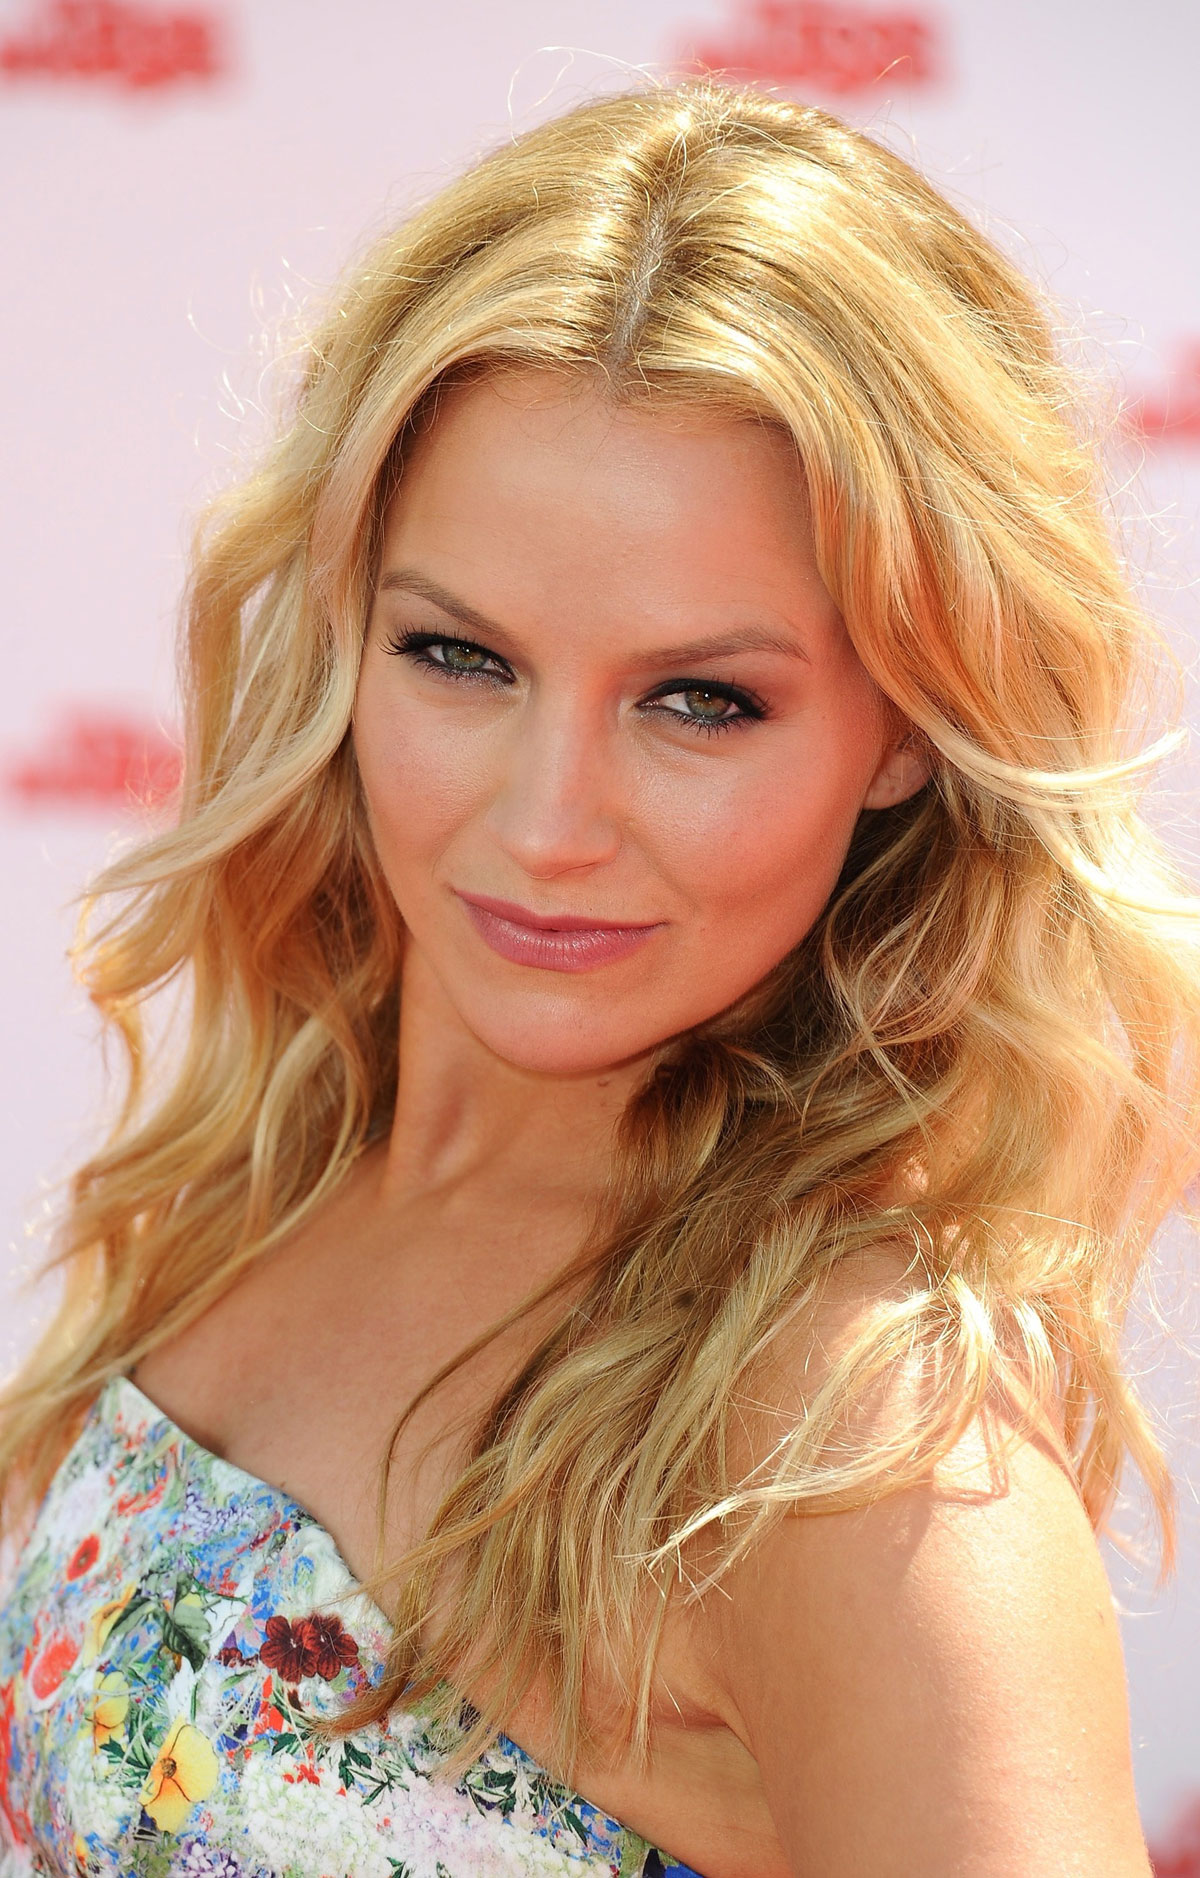 becki newton twitterbecki newton milkshake, becki newton instagram, becki newton ugly betty, becki newton twitter, becki newton height weight, becki newton, becki newton wikifeet, becki newton charmed, becki newton imdb, becki newton nudography, becki newton husband, becki newton net worth